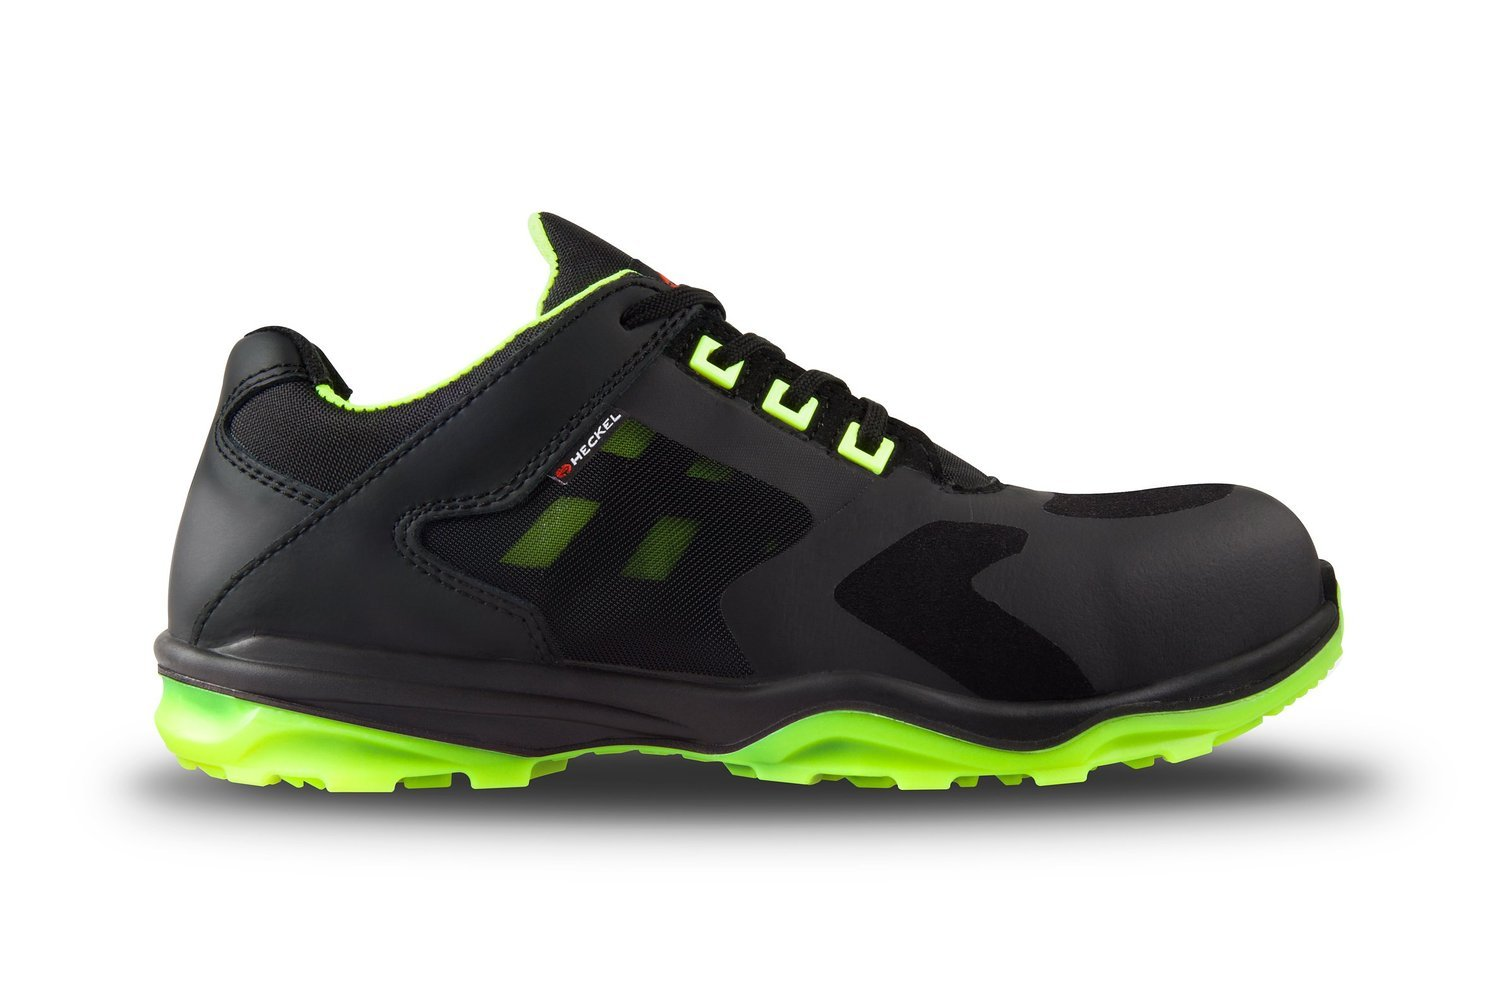 Heckel RUN-R ACE S1P Zapatillas de seguridad, sin metal, muy ligeras, varias tallas disponibles, color verde, talla 41: Amazon.es: Amazon.es